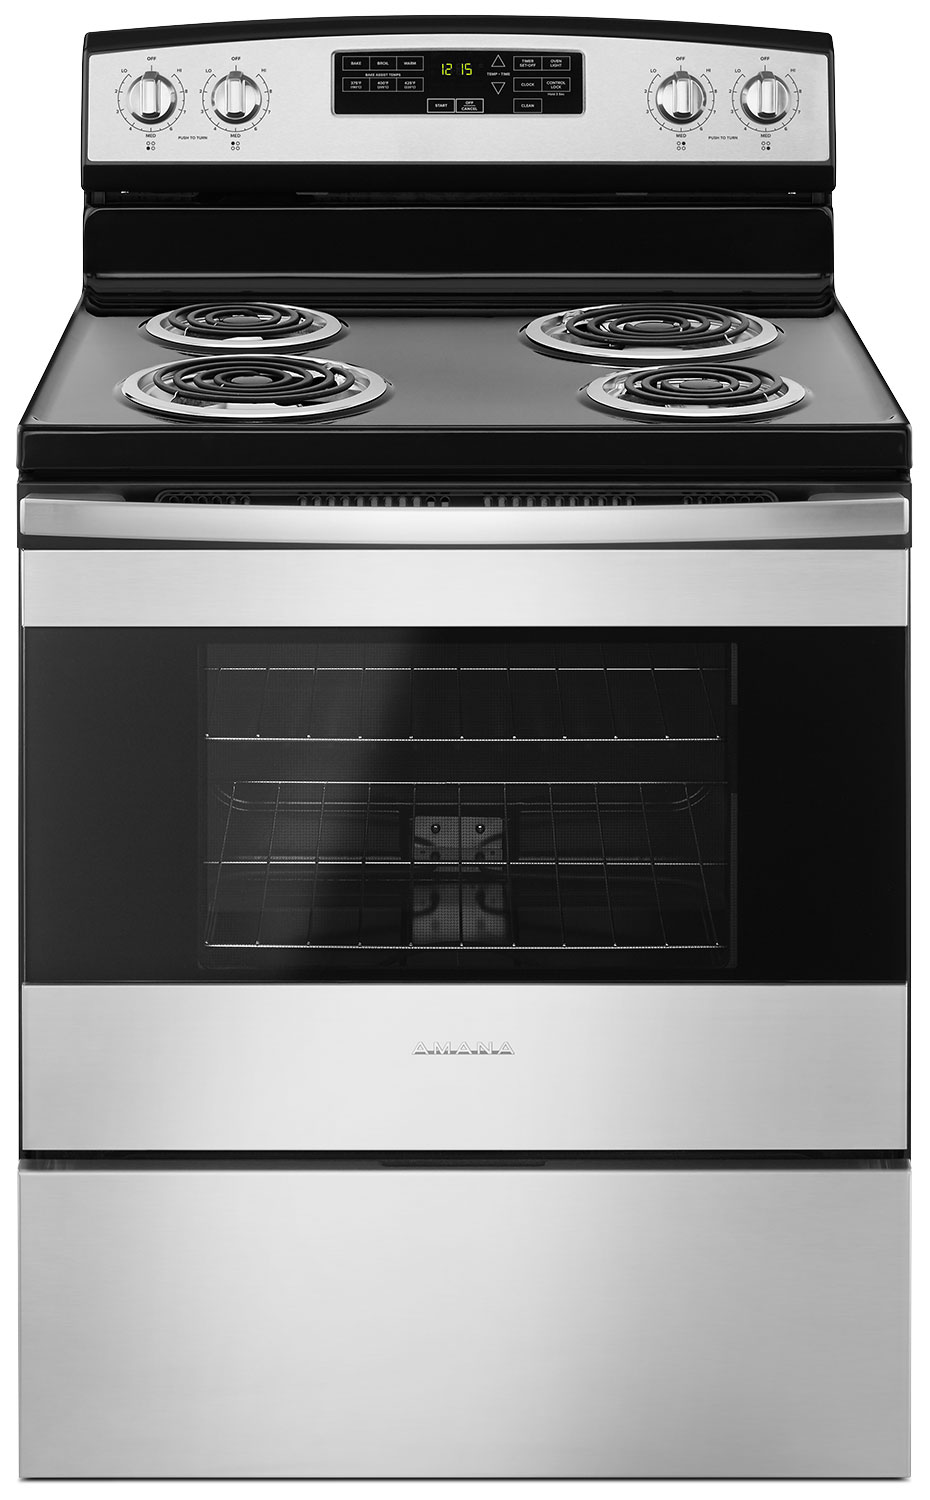 Amana 4.8 Cu. Ft. Freestanding Electric Range – YACR4503SFS